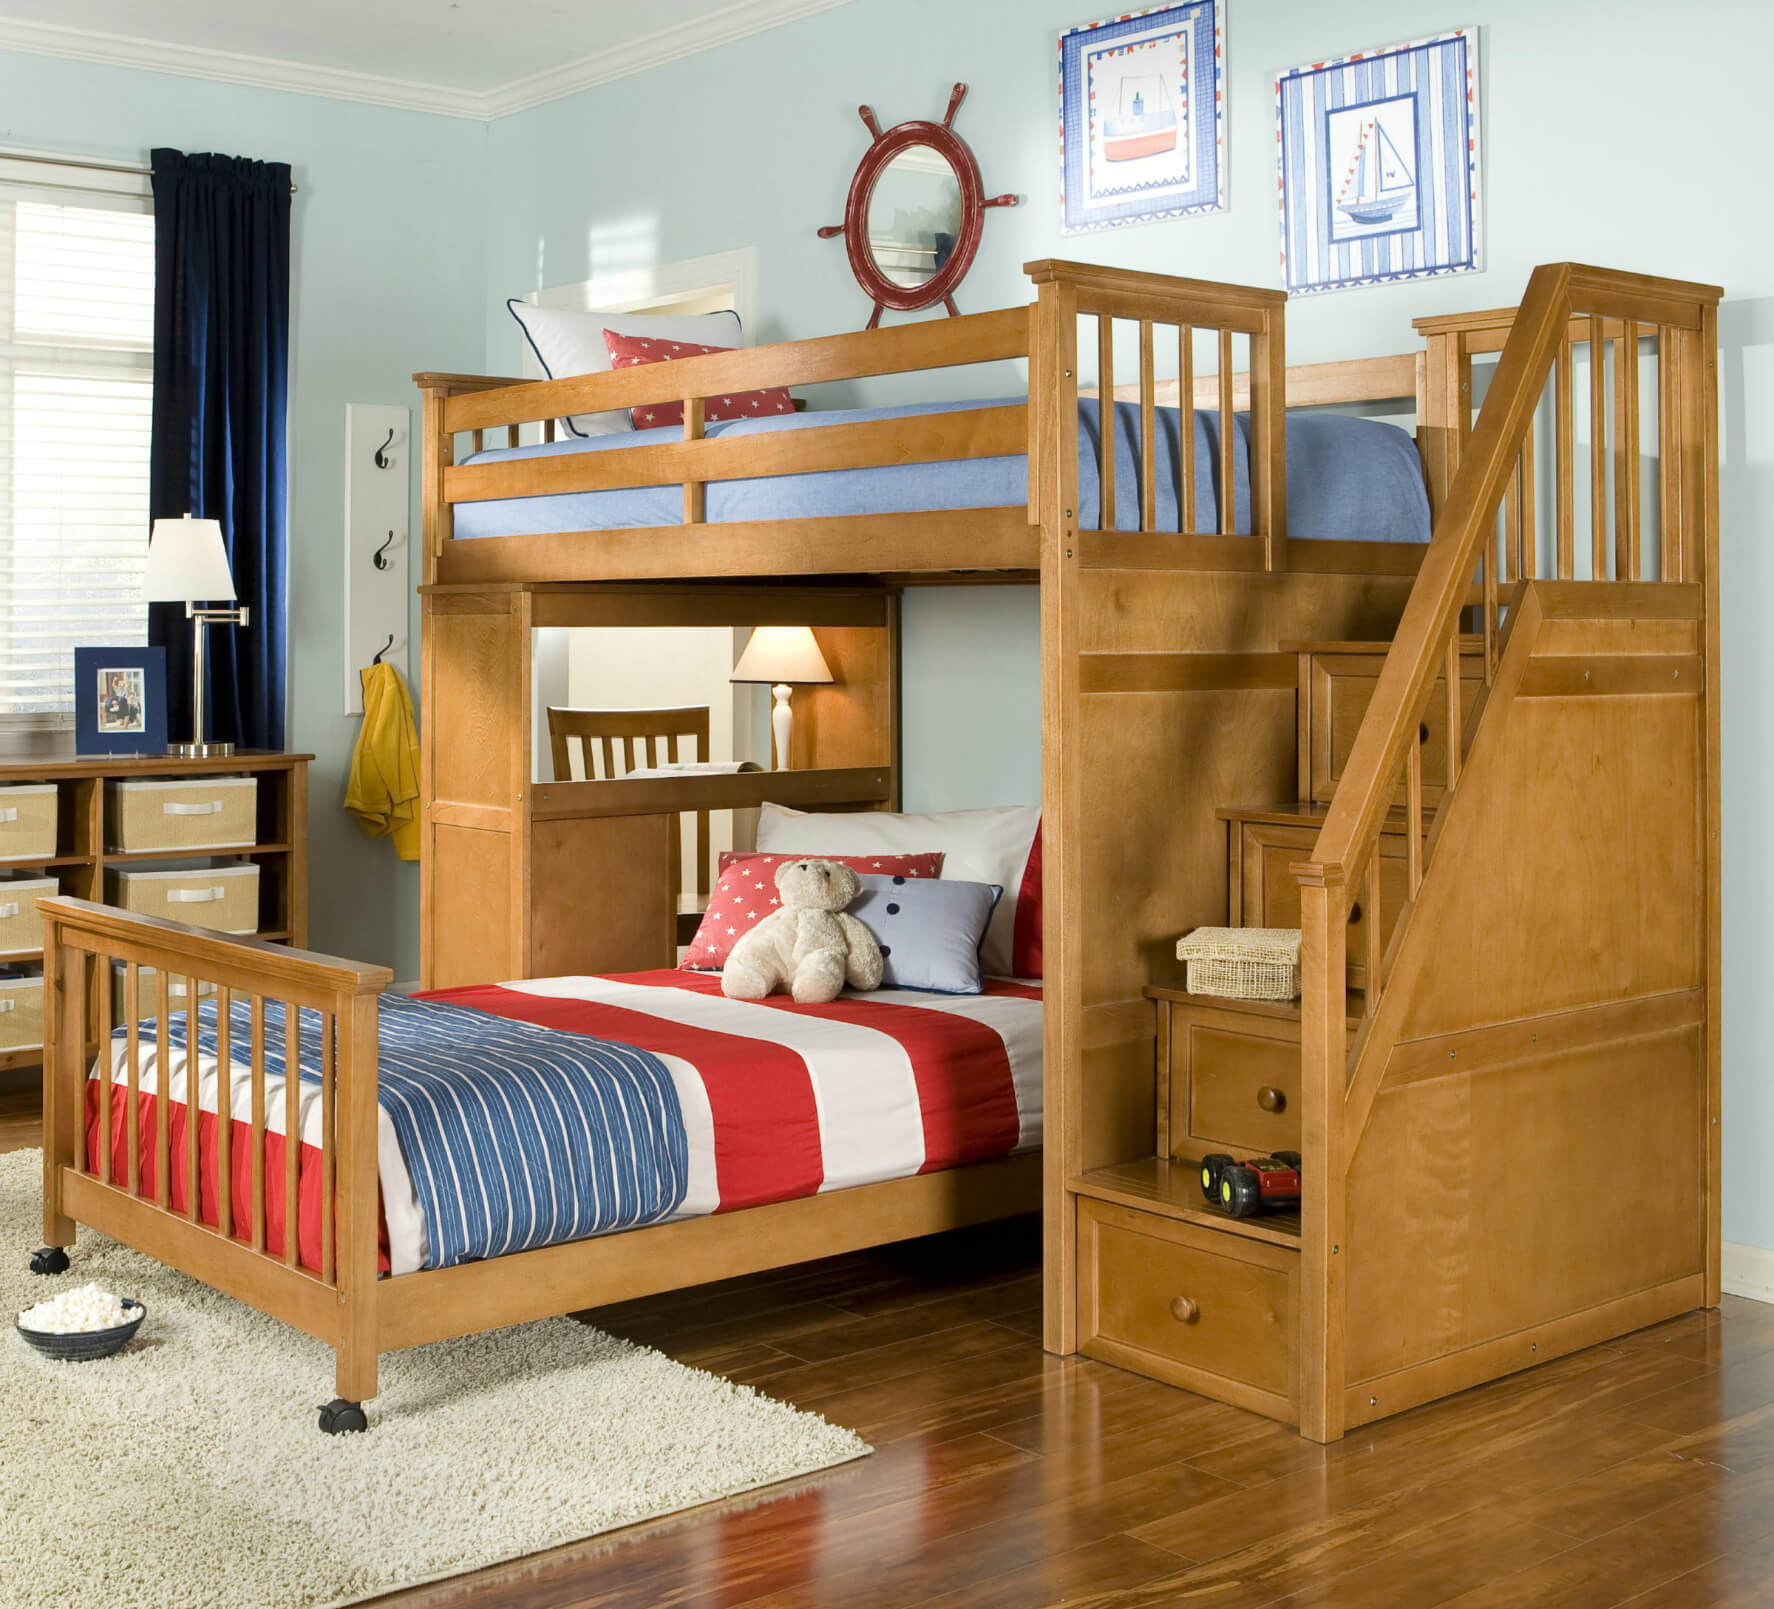 Pecan hardwood L-shaped bed includes a staircase and desk. Lower bed (can be twin or full) is on wheels and is separate from the upper bed and storage. Staircase includes drawer storage (very clever design).